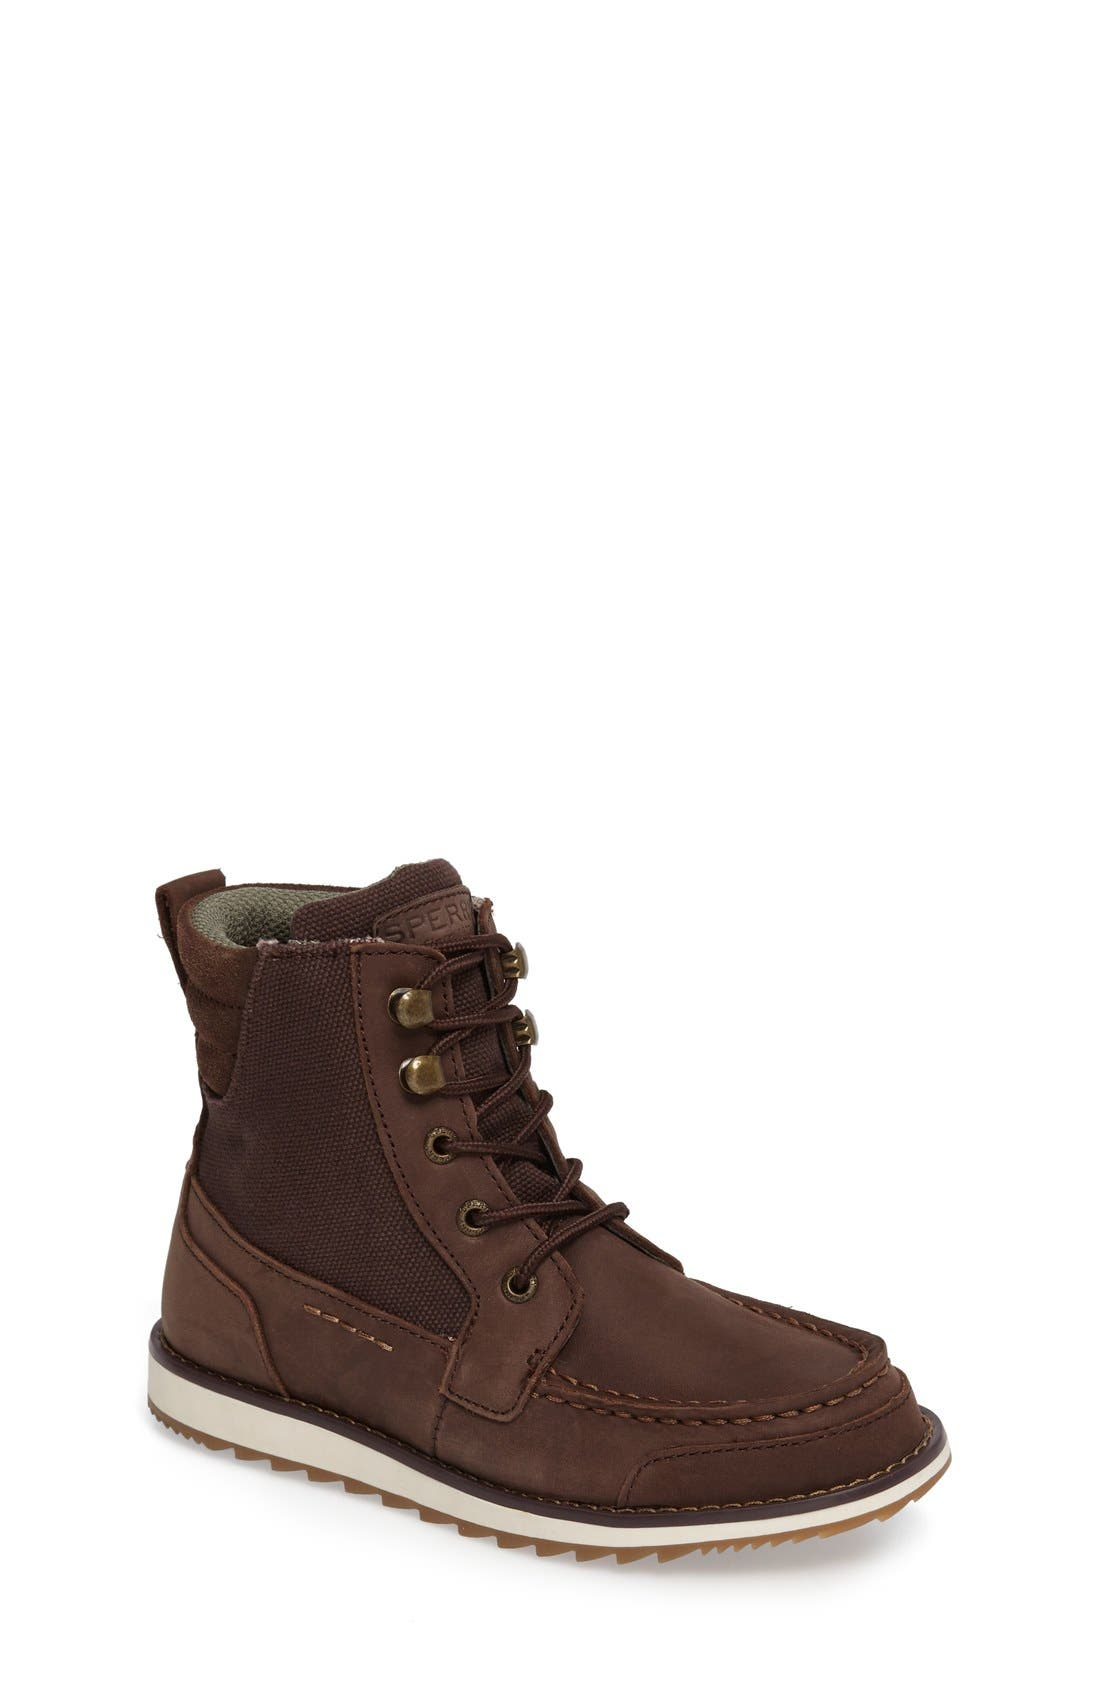 Sperry Dockyard Boot (Toddler, Little Kid & Big Kid)